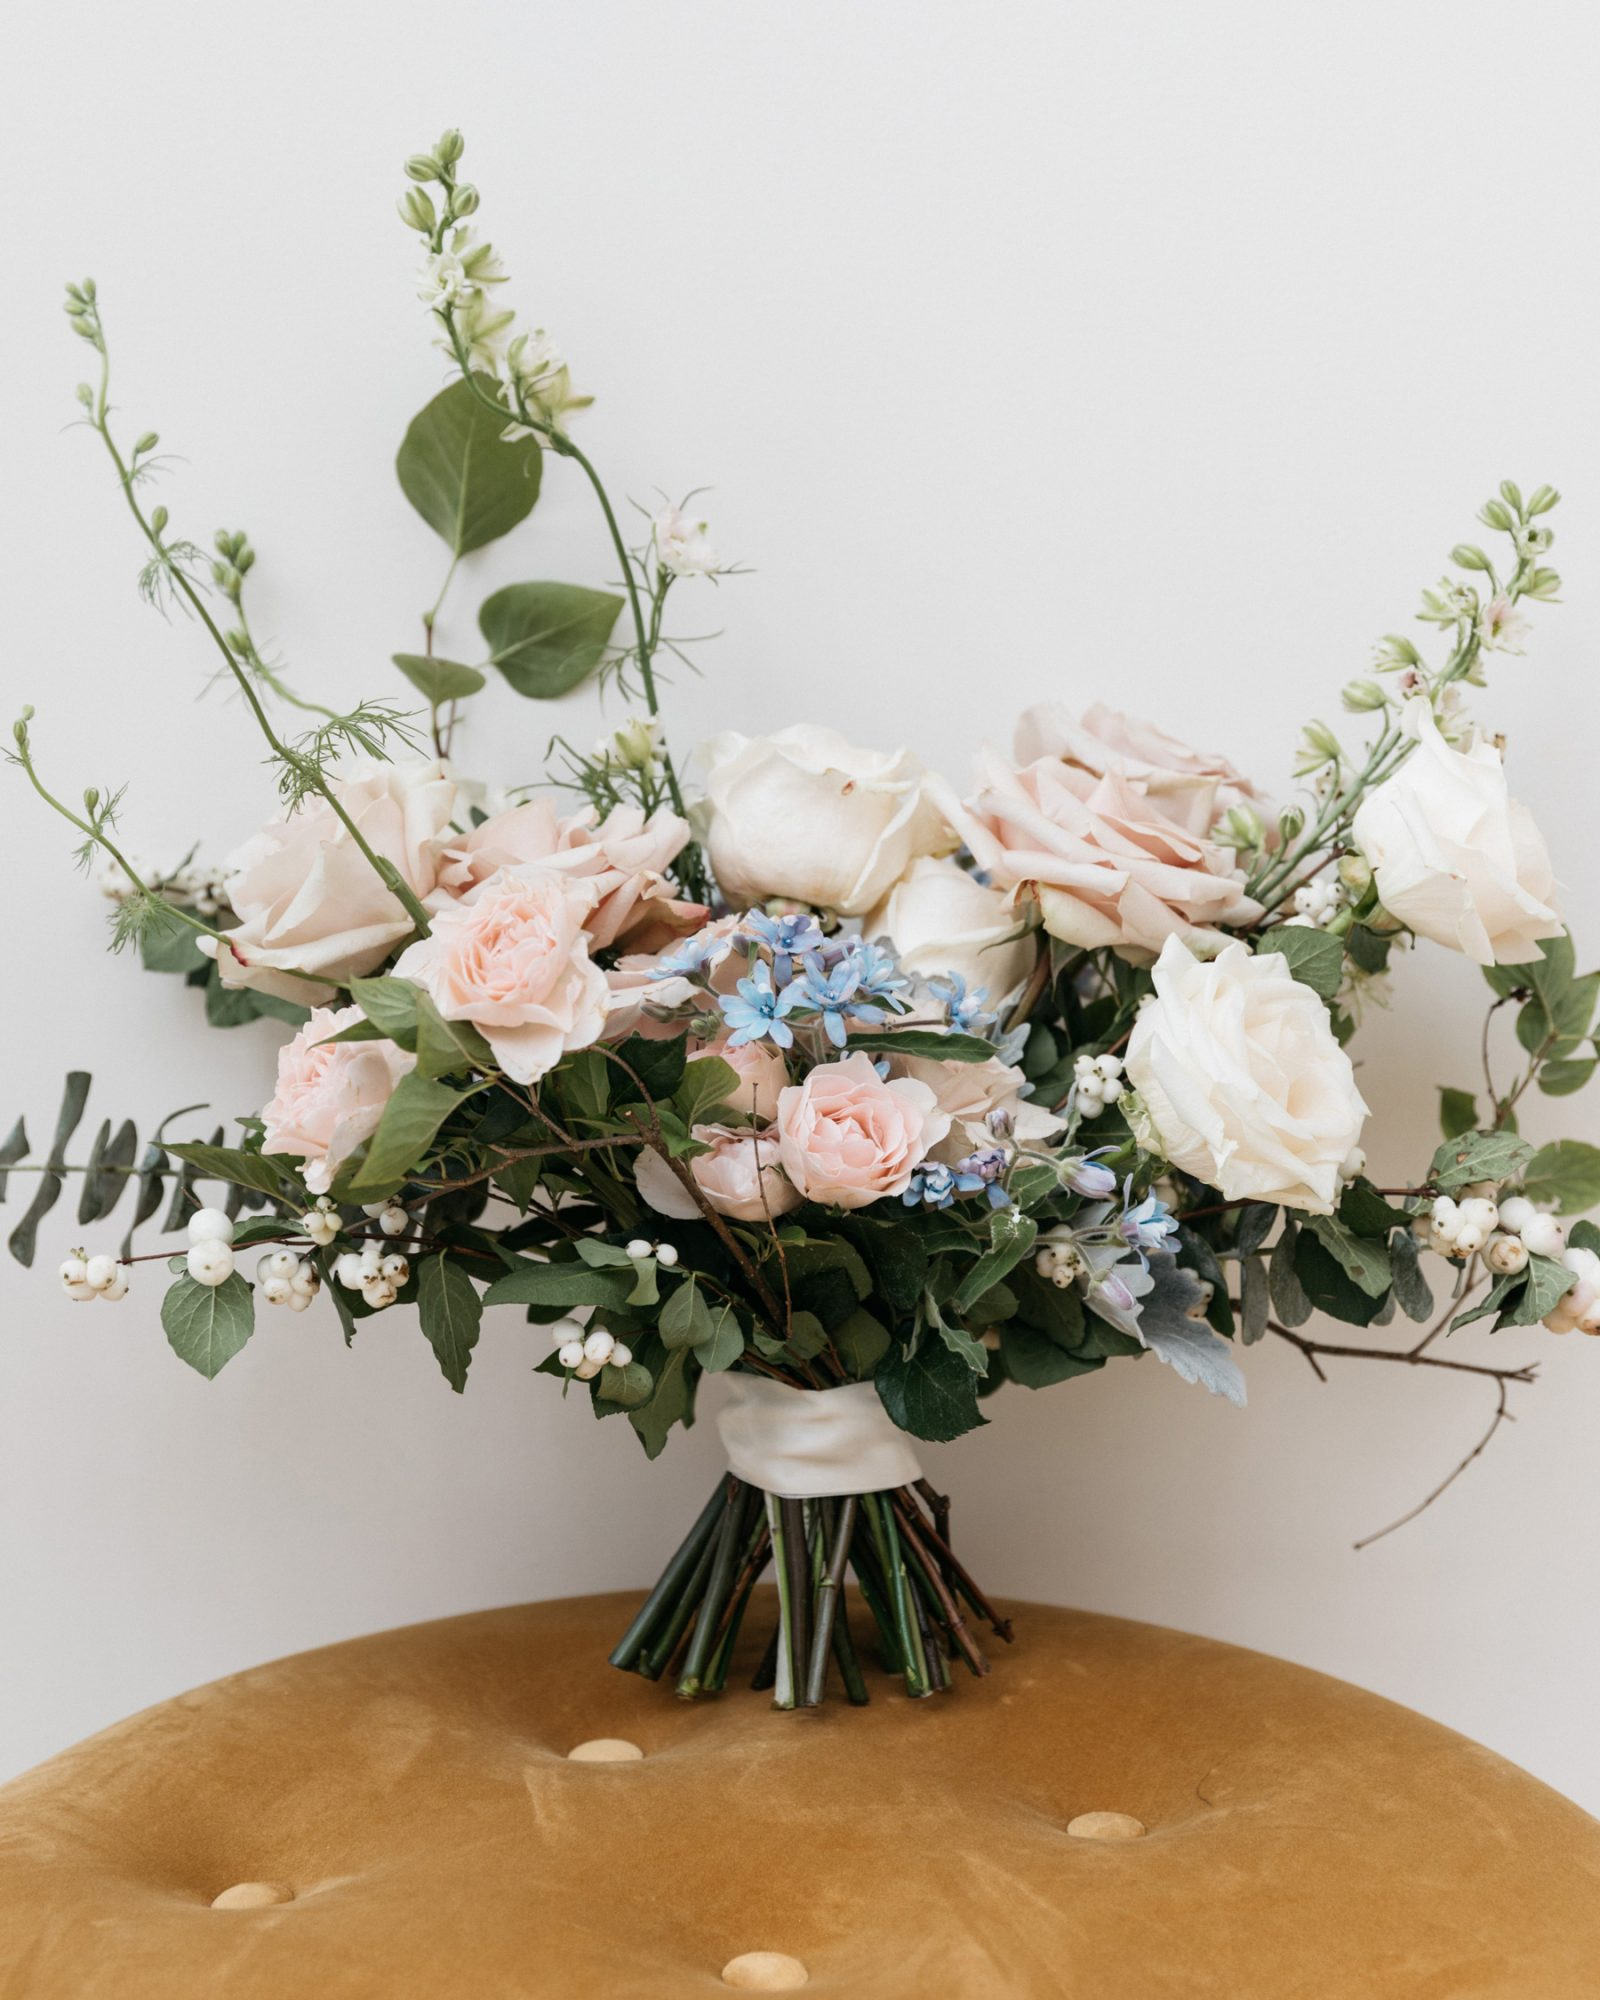 wedding bouquet with white pink blue flowers